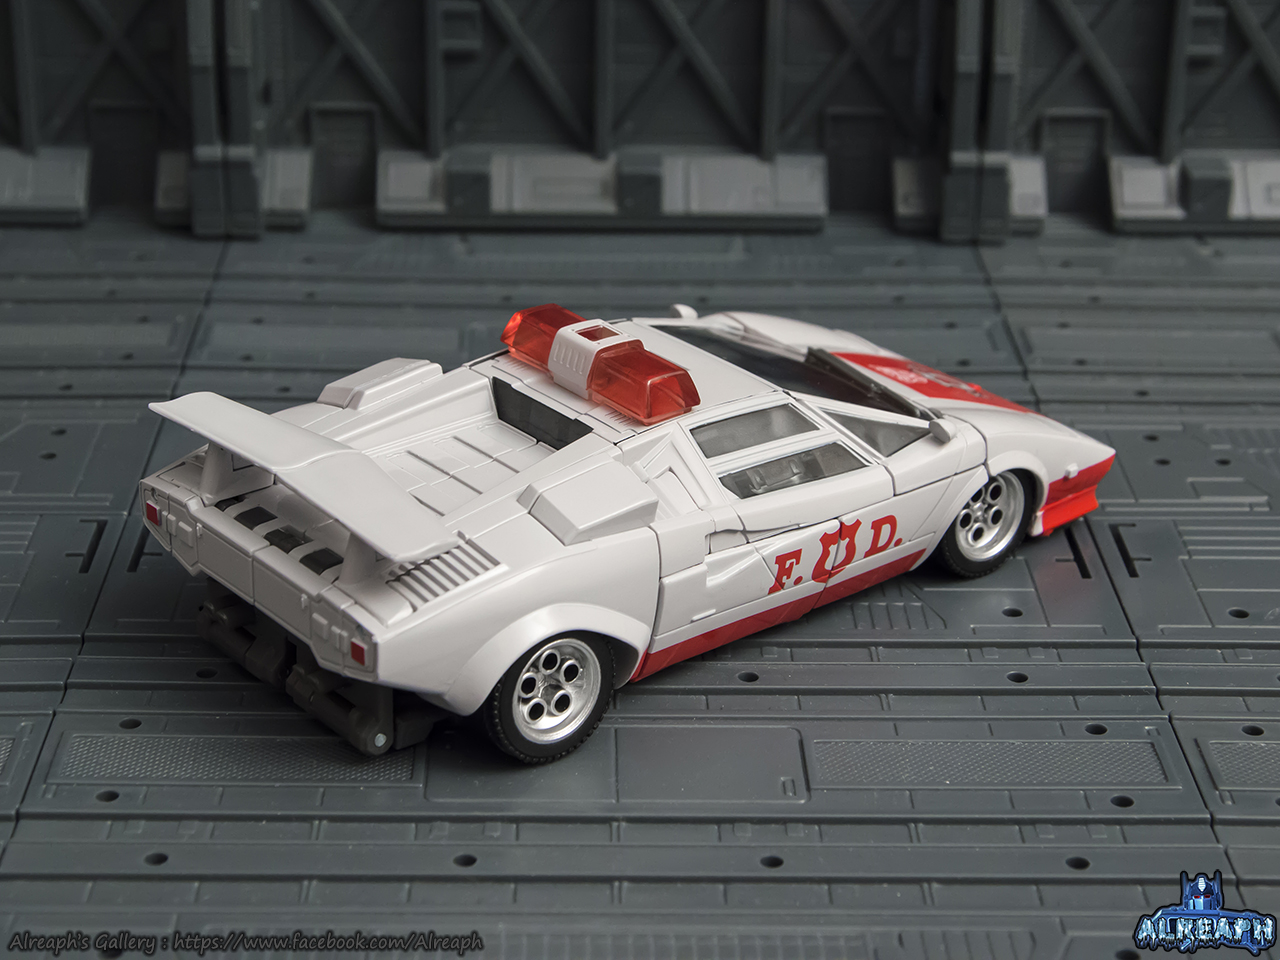 [Masterpiece] MP-14 Red Alert/Feu d'Alerte - Page 2 EYSDdrwH